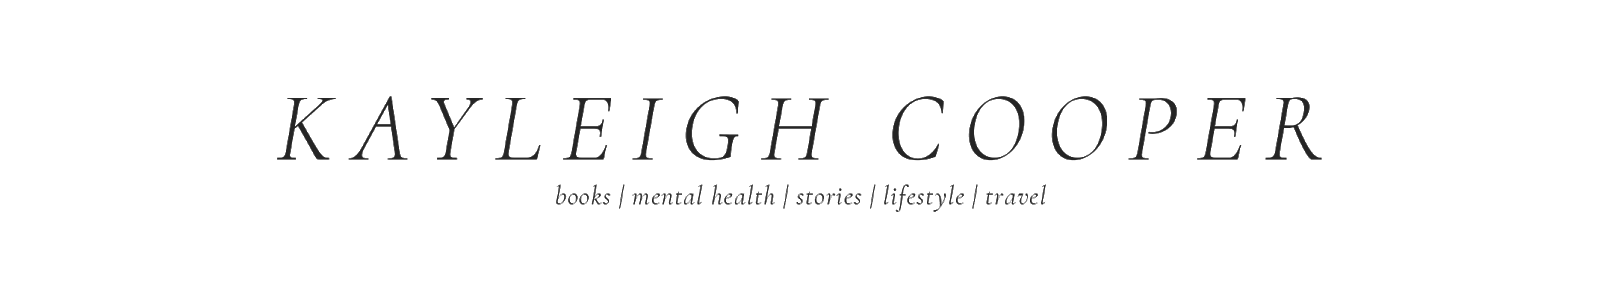 Kayleigh Cooper | Books, Mental Health, Stories, Lifestyle, Travel